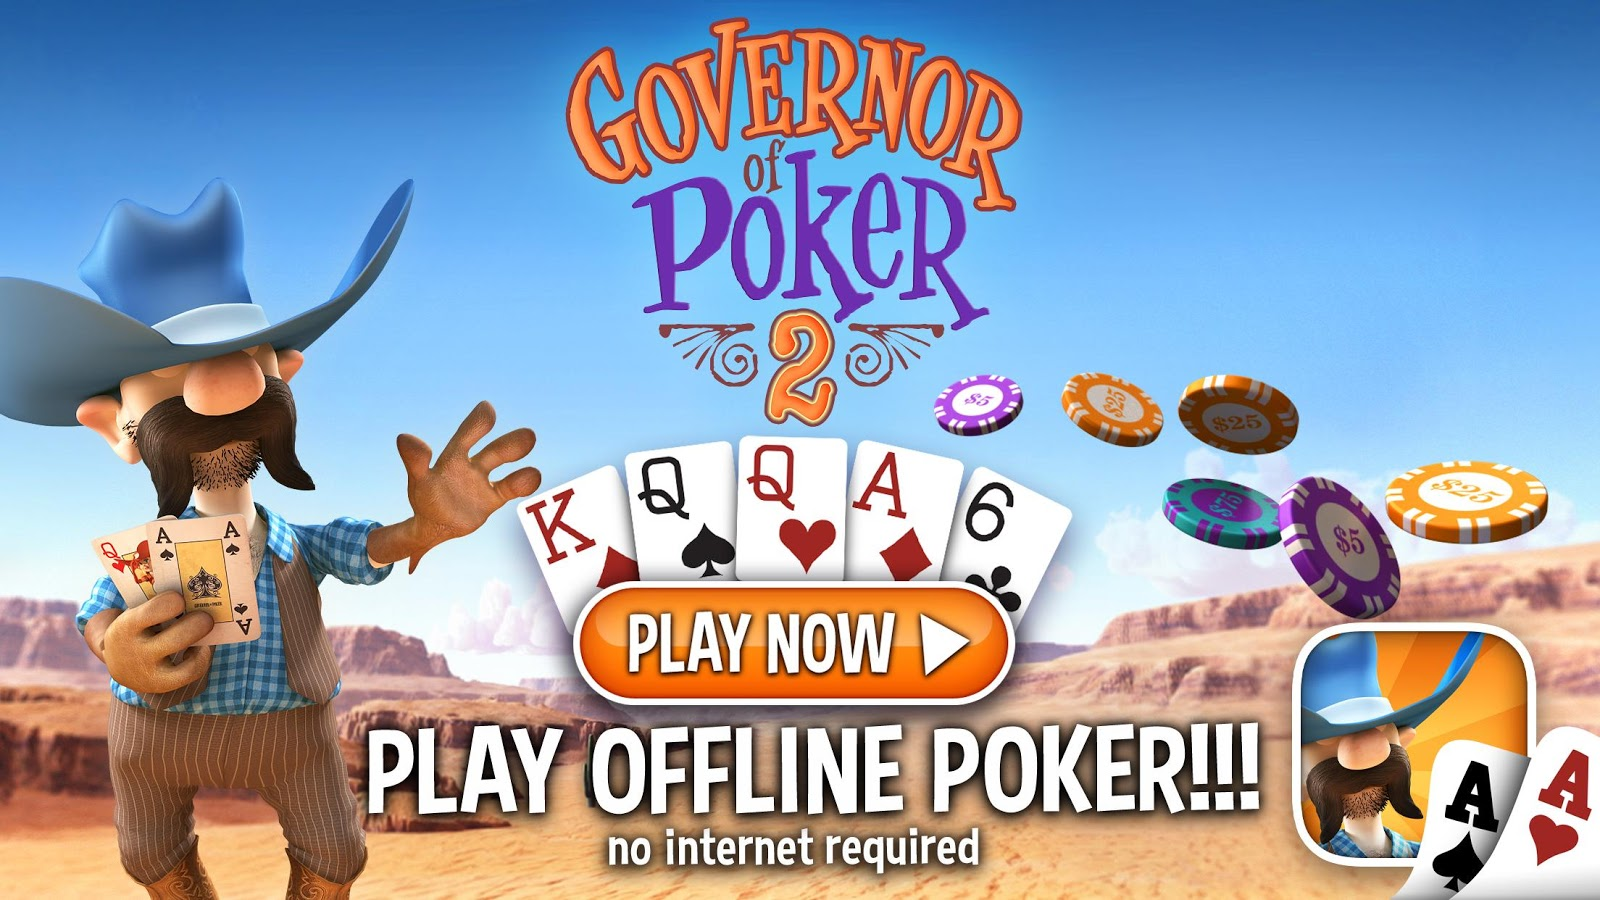 Governor of Poker 2 Premium Screenshot 10